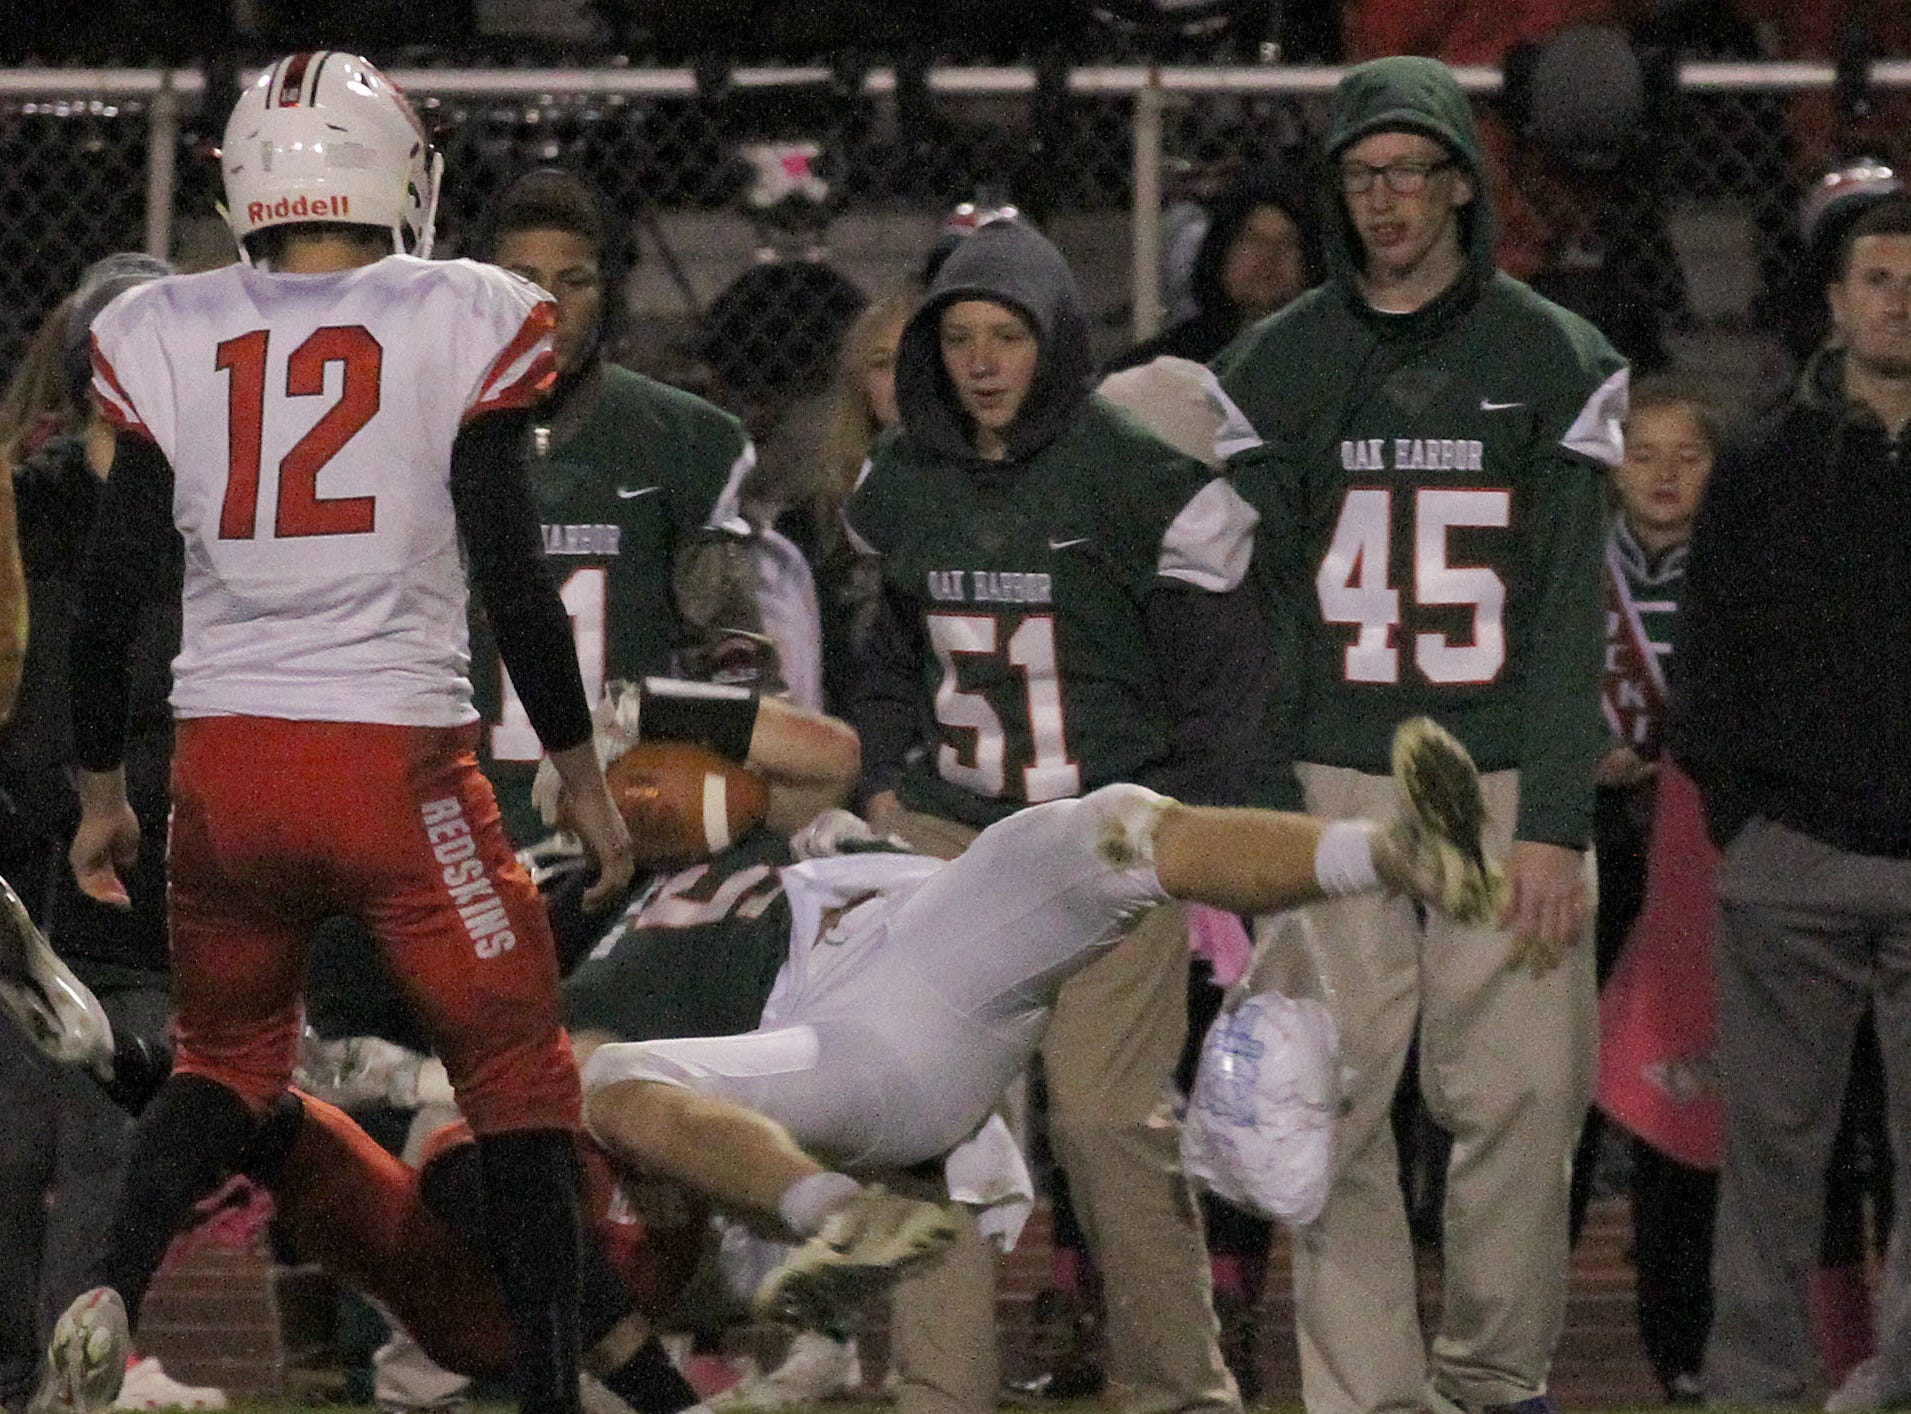 Oak Harbor's Clay Schulte is upended by a Port Clinton defender.